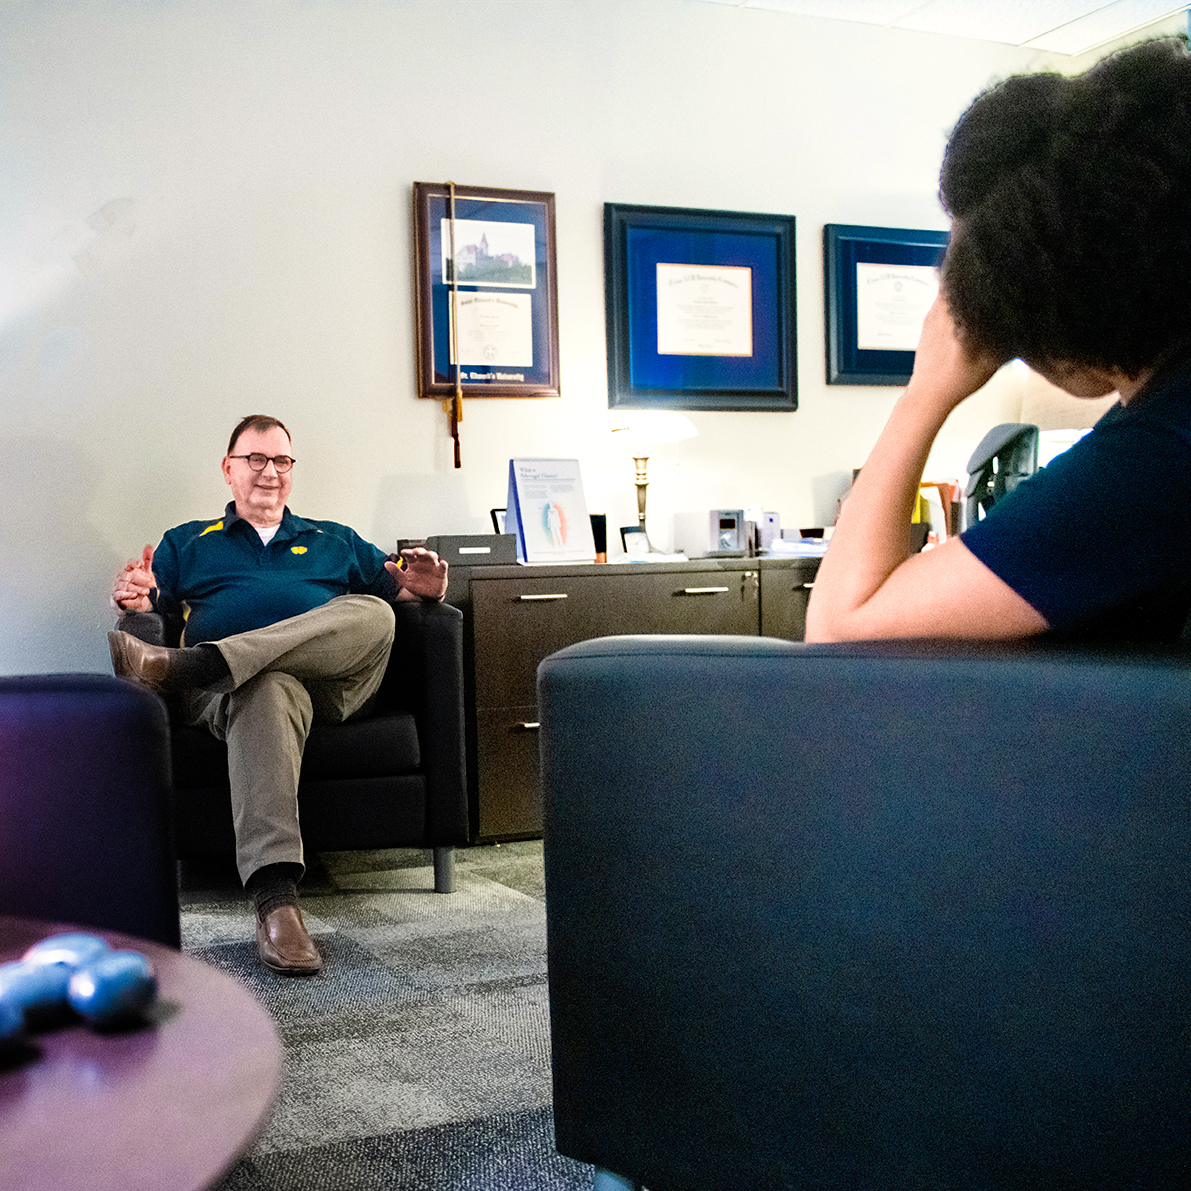 Counselor sitting down in a char talking to a student.